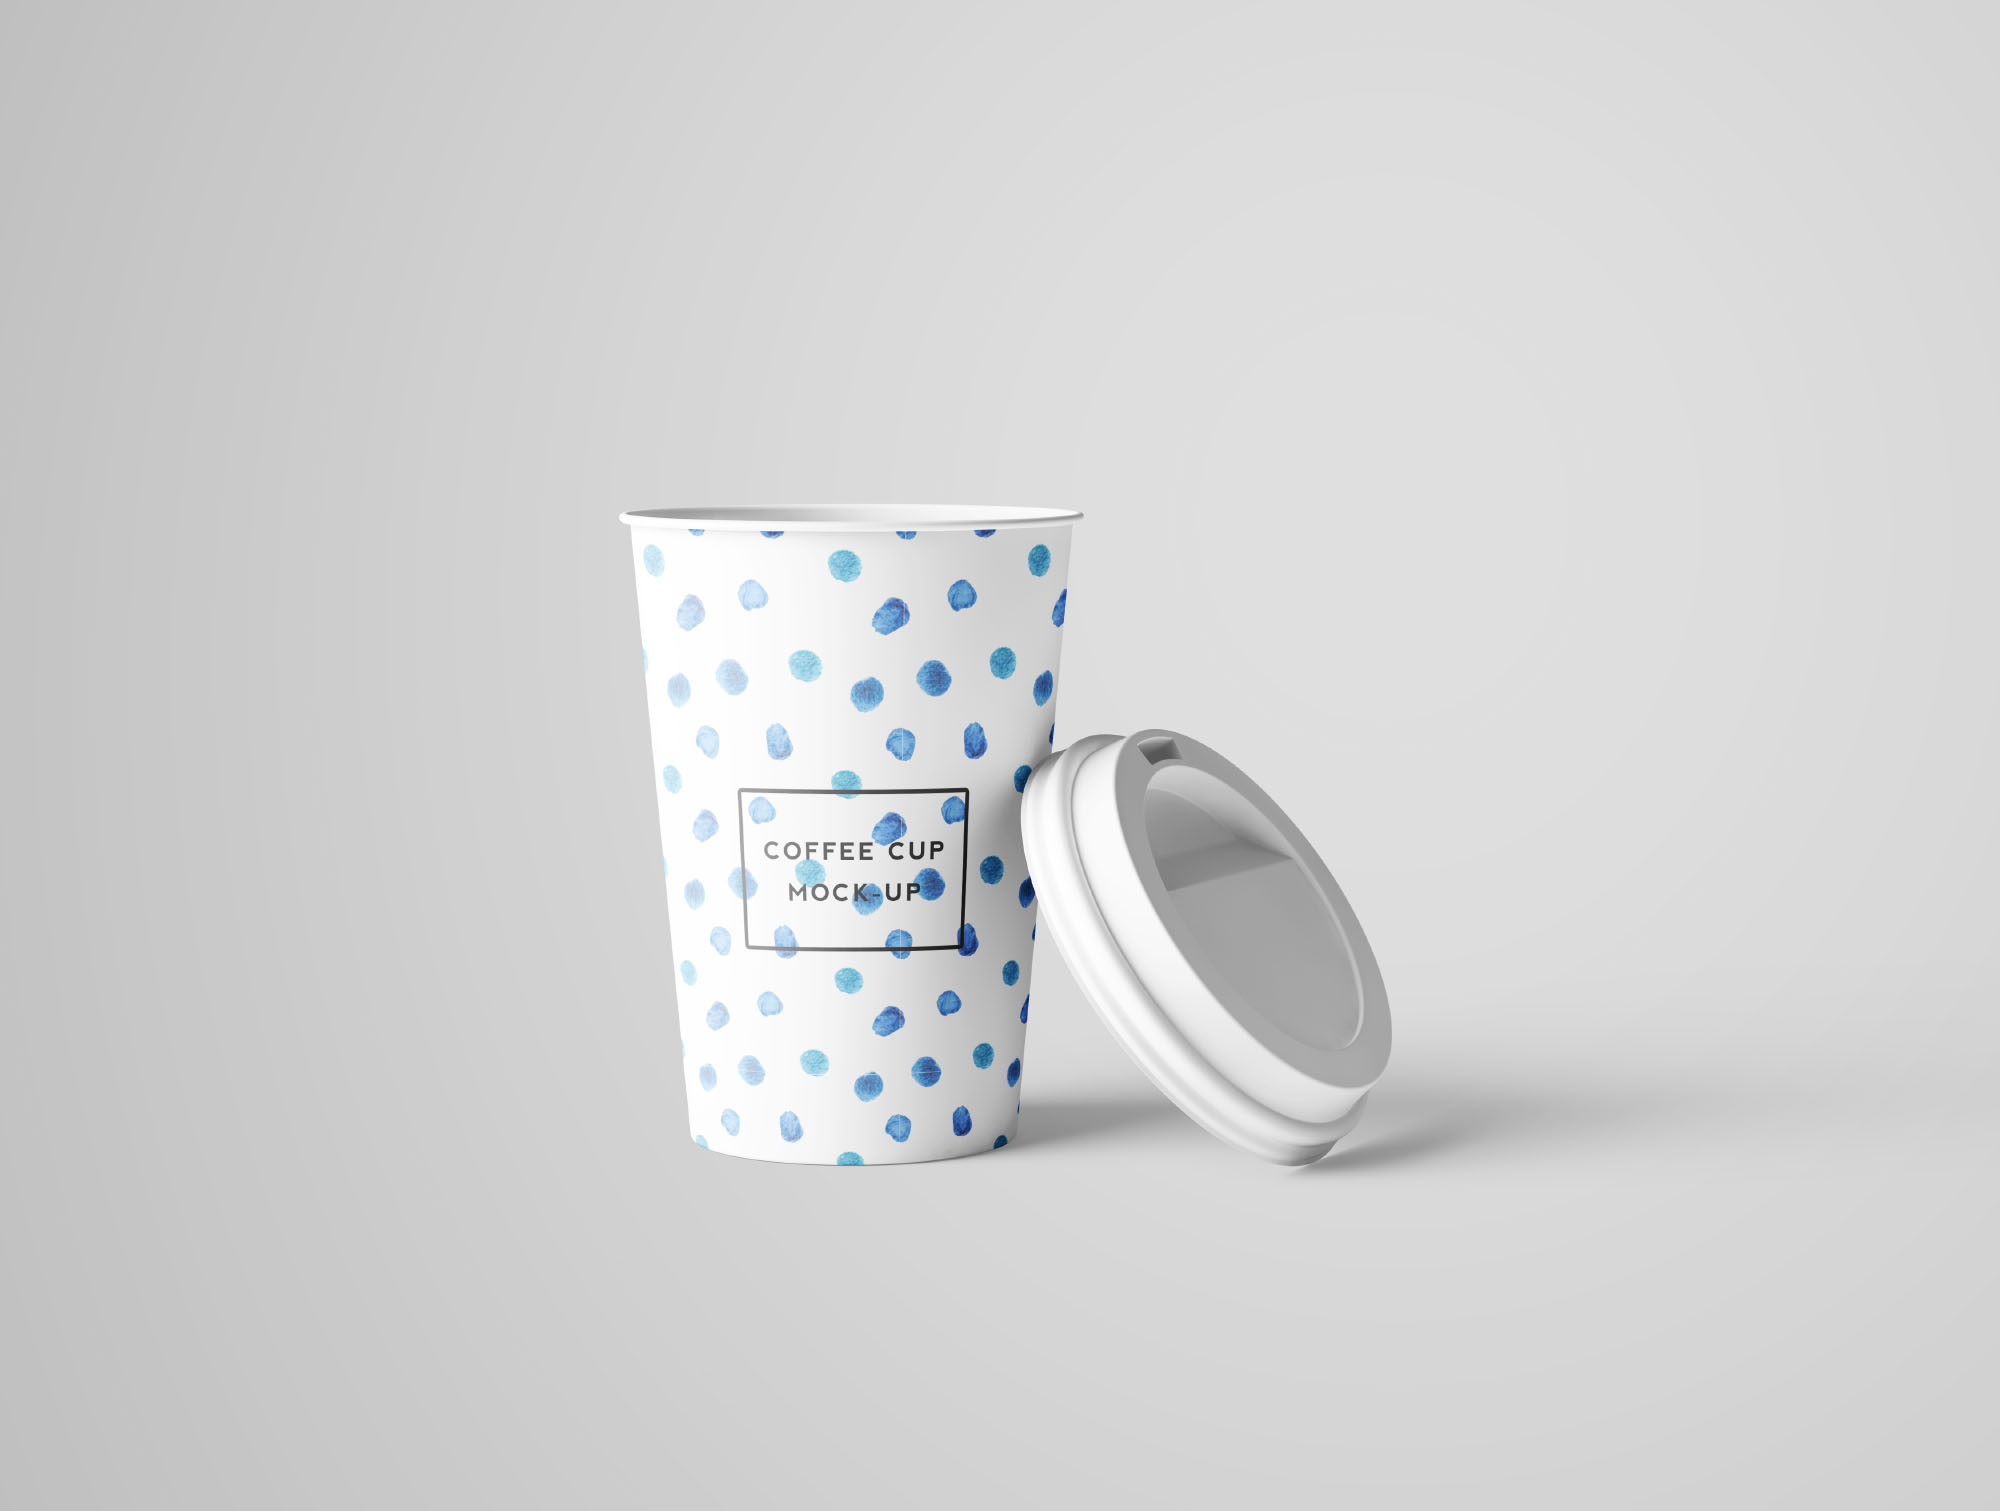 Coffee Cup Mockup - Opened